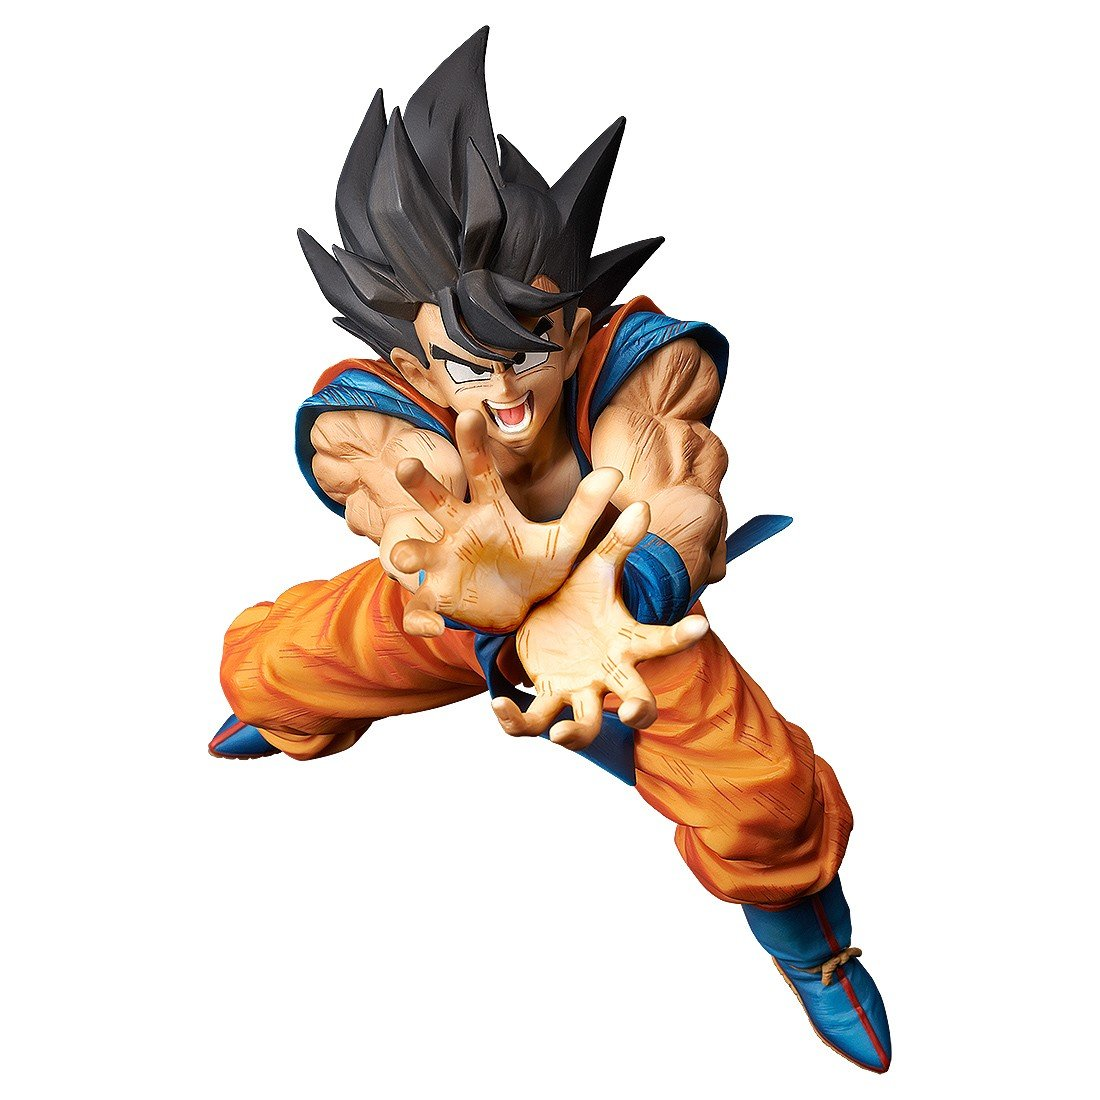 Dragon Ball Z Son Goku Kamehameha Statue by Banpresto -Banpresto - India - www.superherotoystore.com